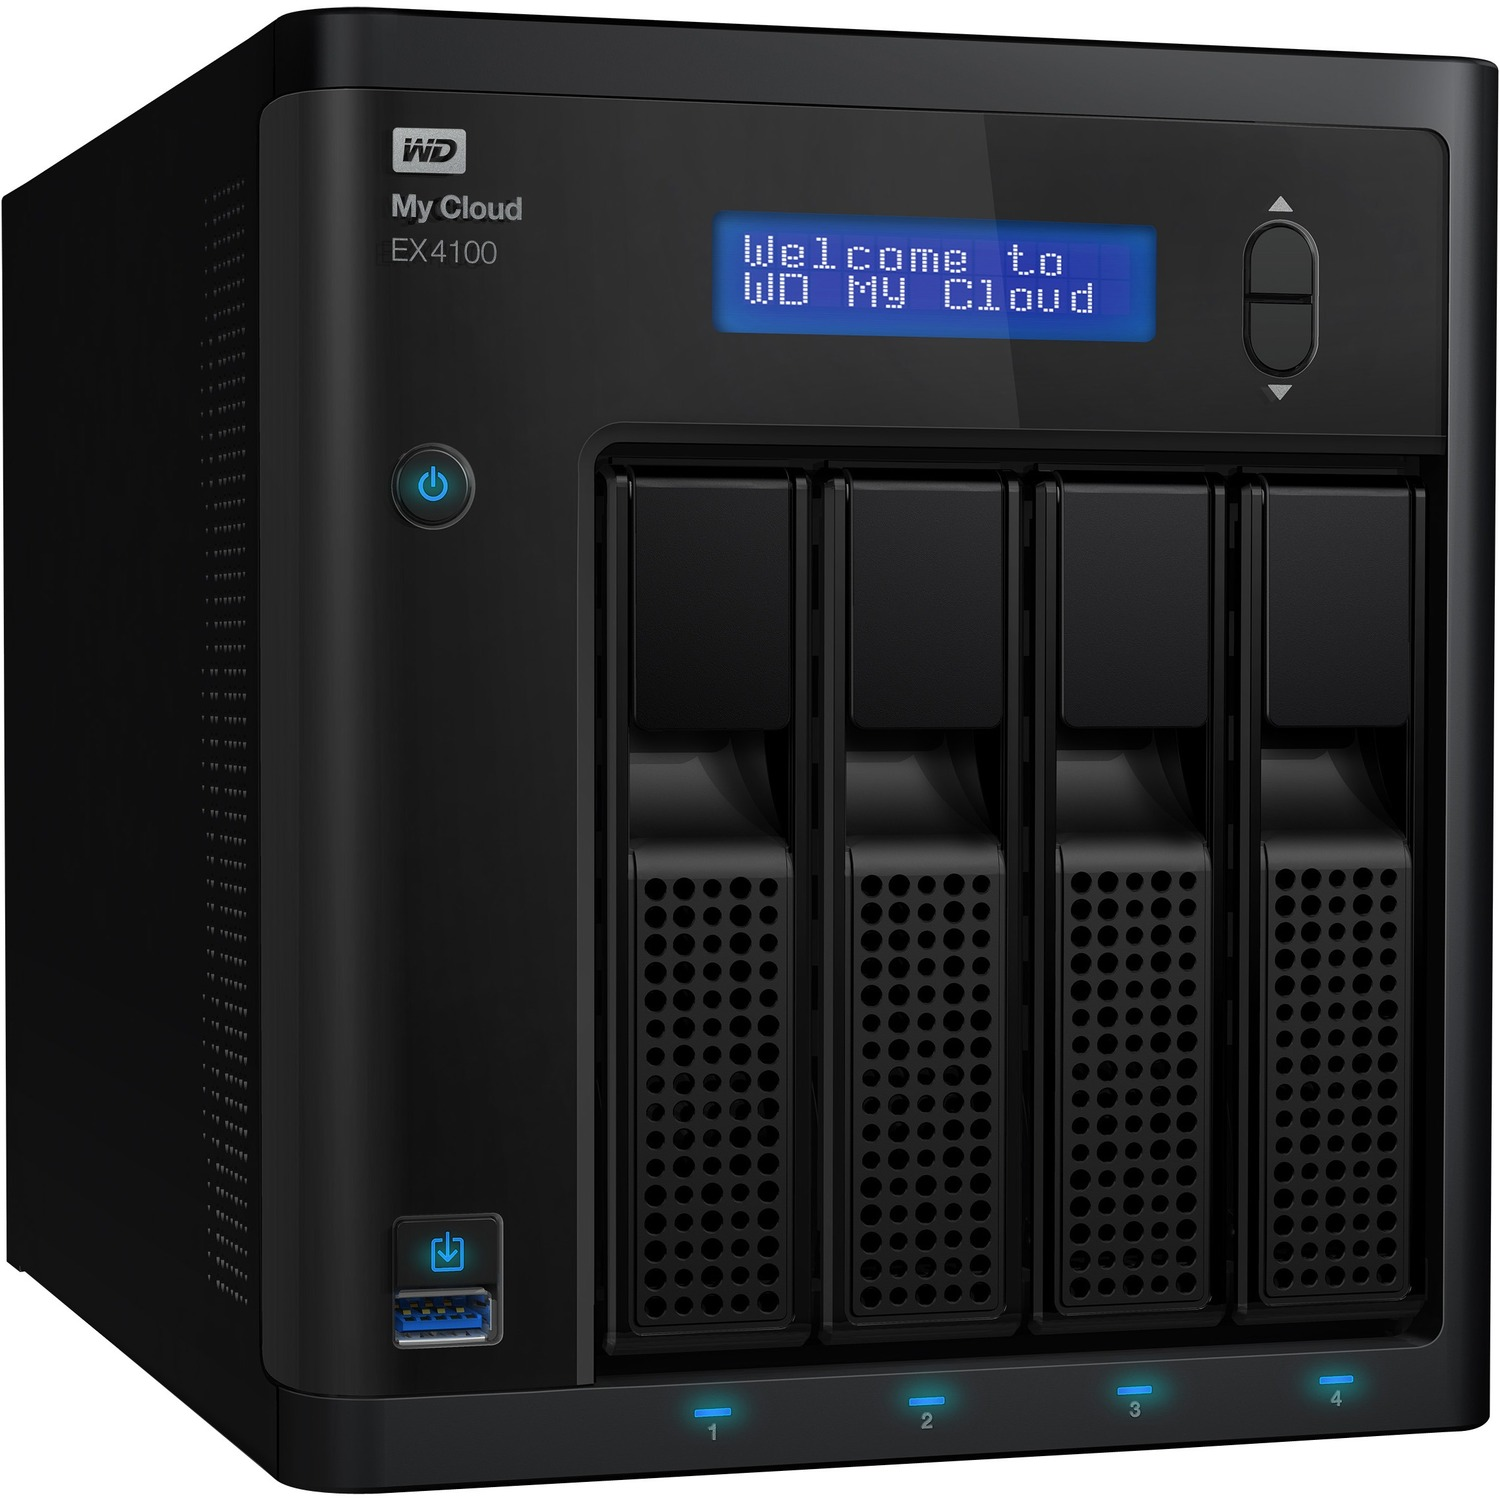 WD My Cloud EX4100 4 x Total Bays NAS Server